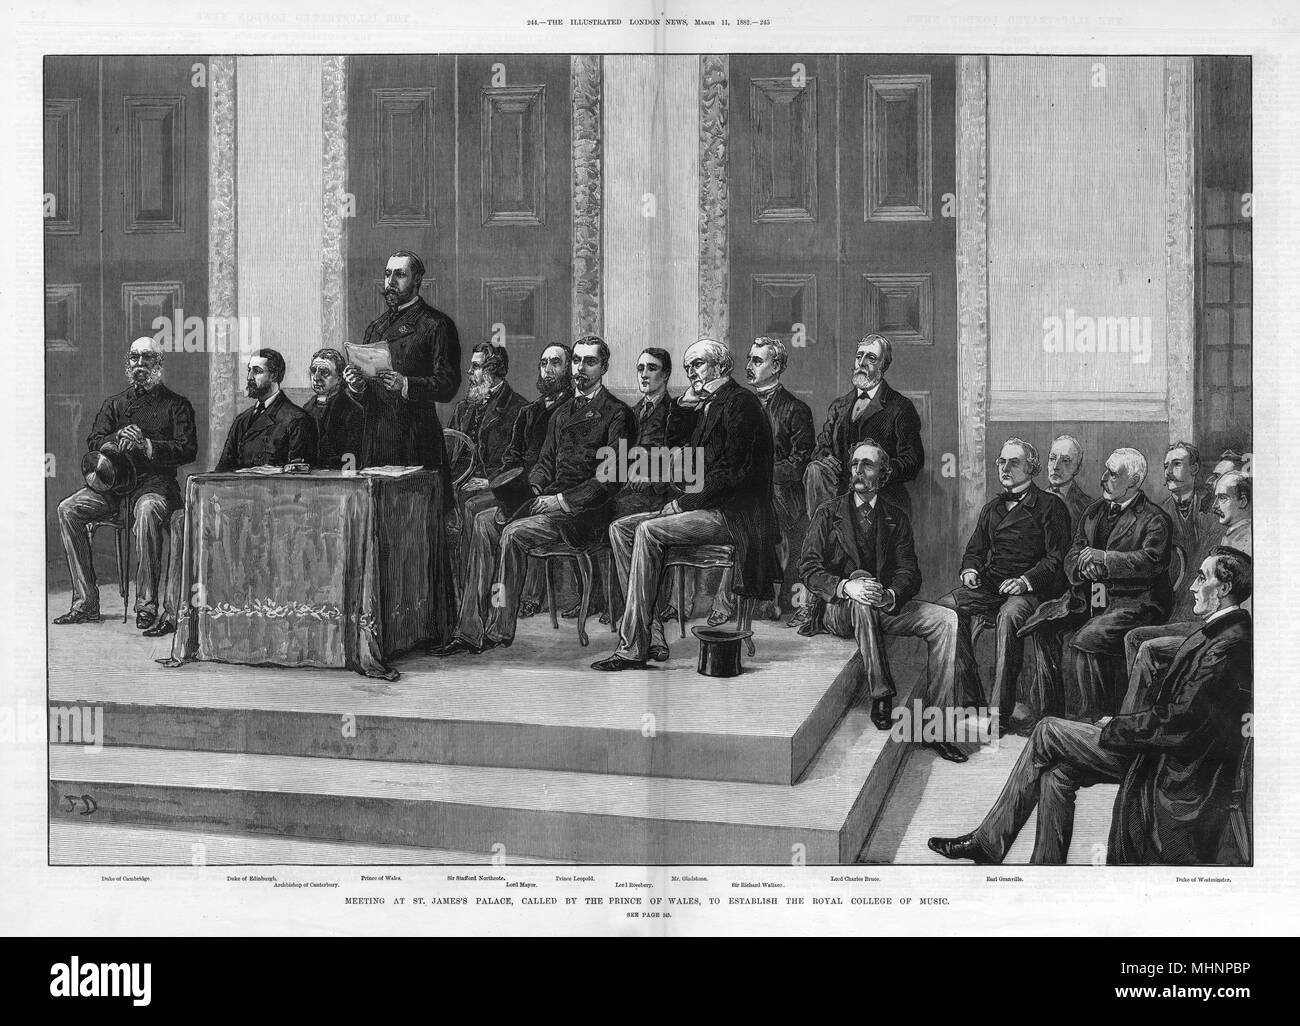 A meeting at St. James's Palace, called by the Prince of Wales, to establish The Royal College of Music. From left to right: Duke of Cambridge, Duke of Edinburgh, Archbishop of Canterbury, Prince of Wales, Sir Stafford Northcote, Lord Mayor, Prince Leopold, Lord Rosebery, Mr Gladstone, Sir Richard Wallace, Lord Charles Bruce, Earl Granville and the Duke of Westminster.     Date: 1882 - Stock Image